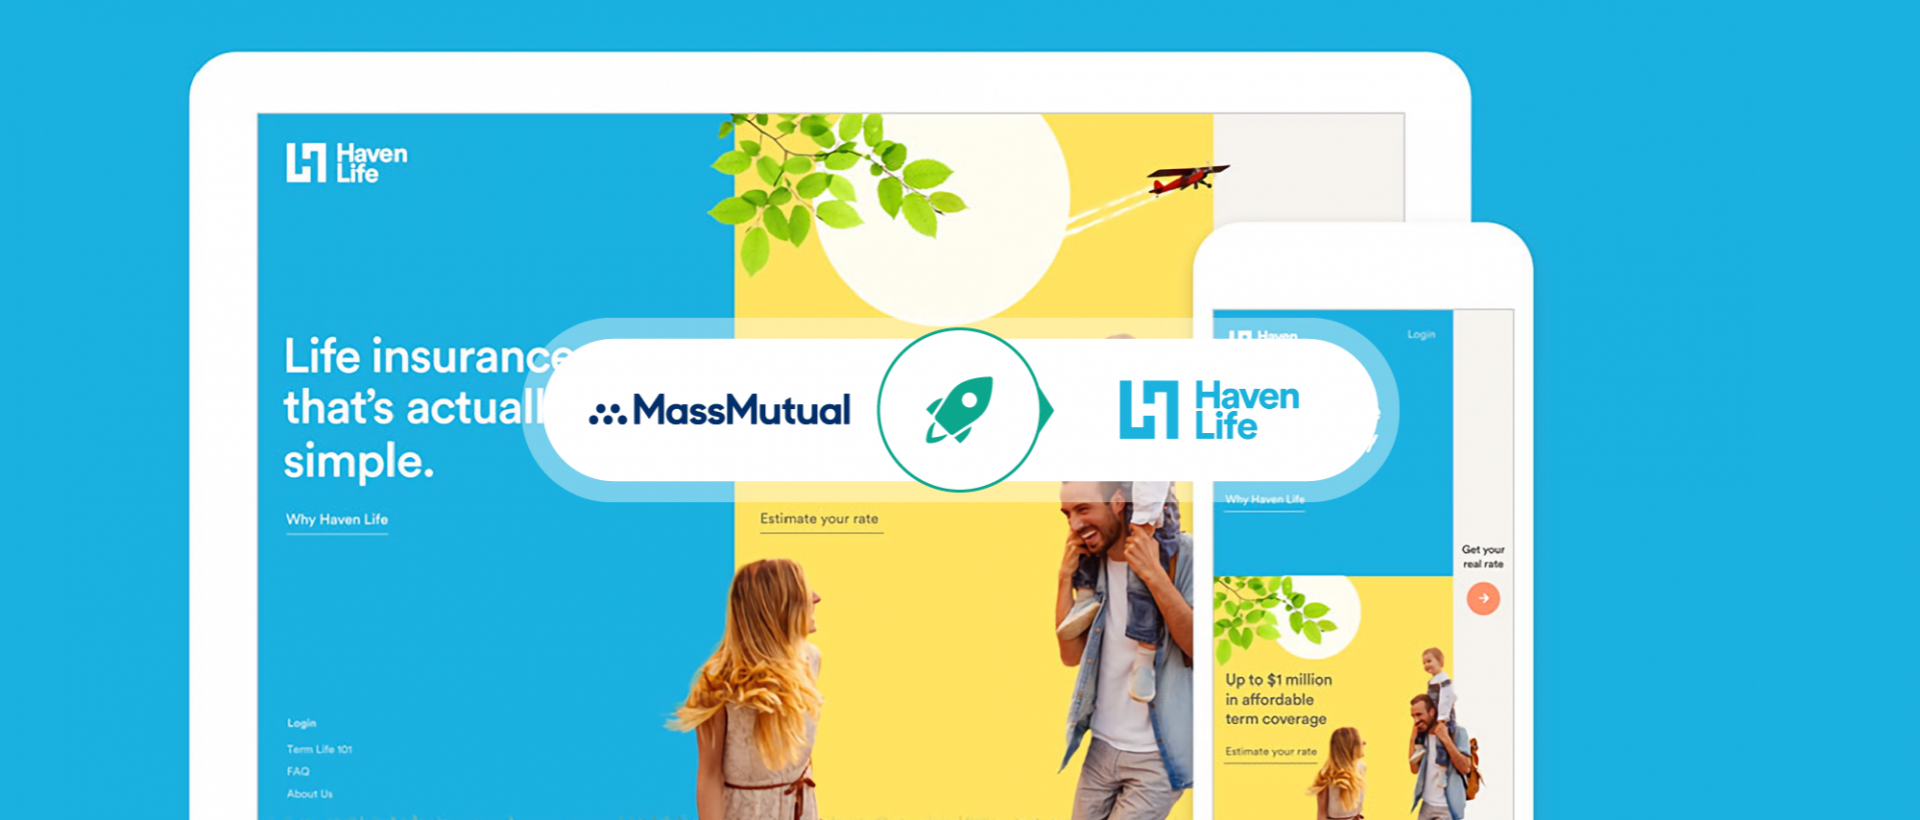 MassMutual Makes Life Insurance Cool Again with Haven Life